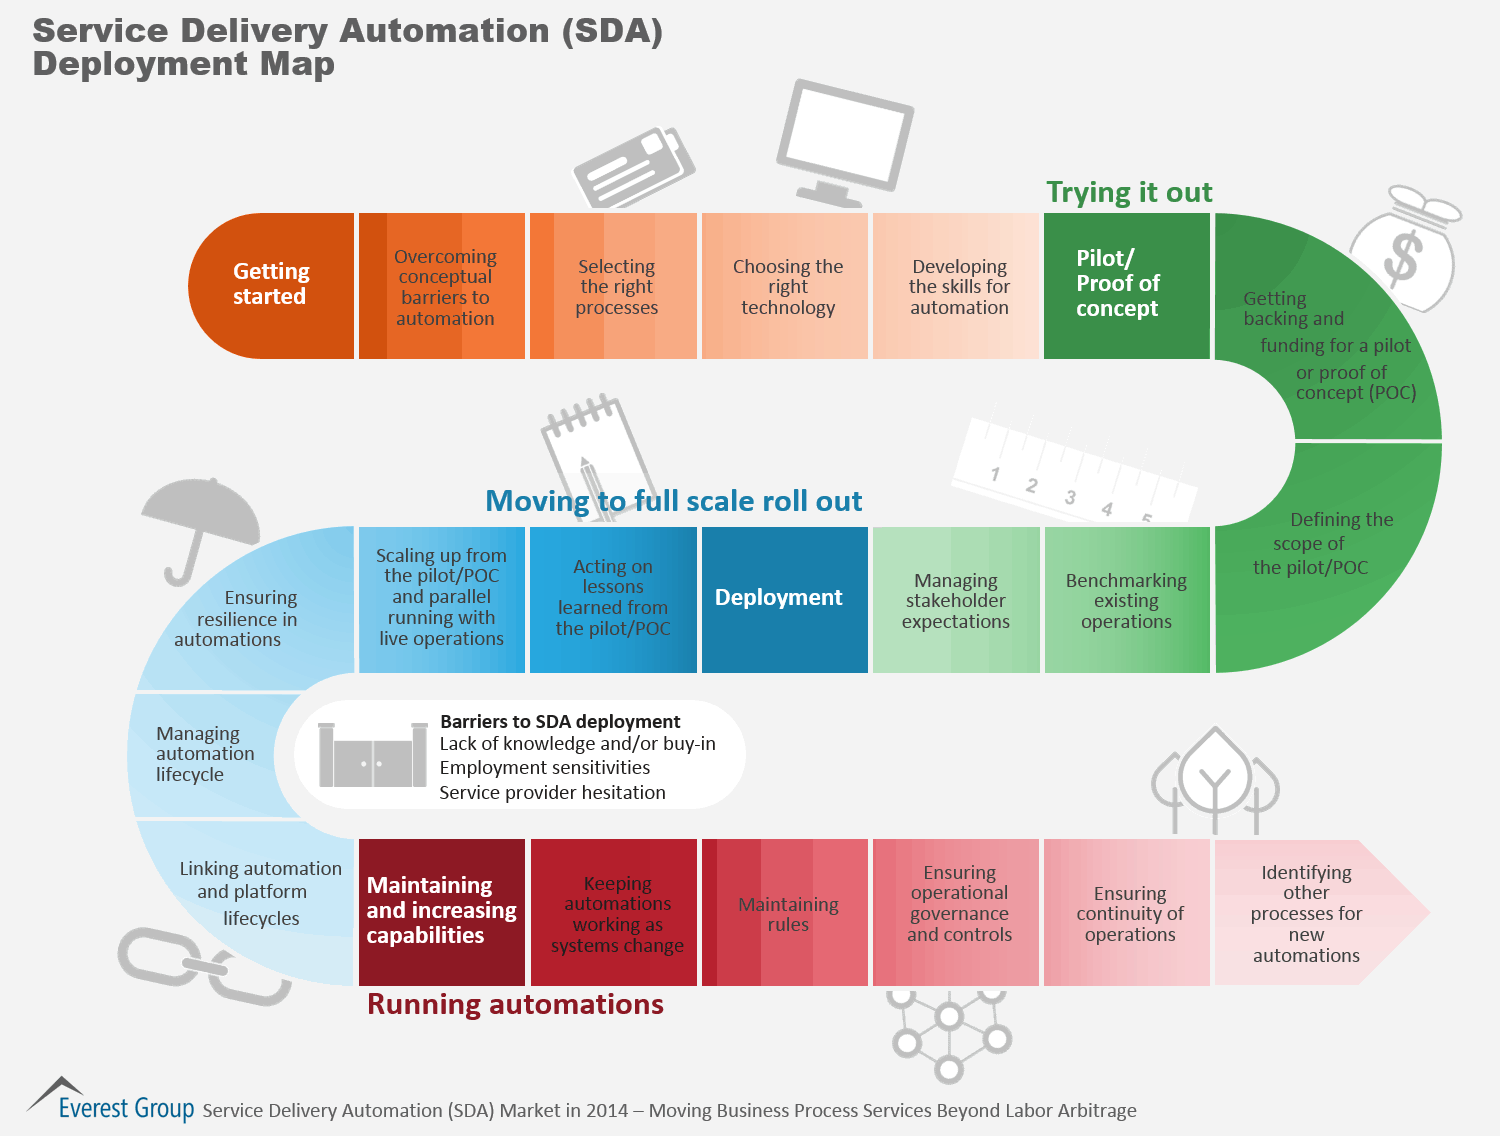 Service Delivery Automation Deployment Map